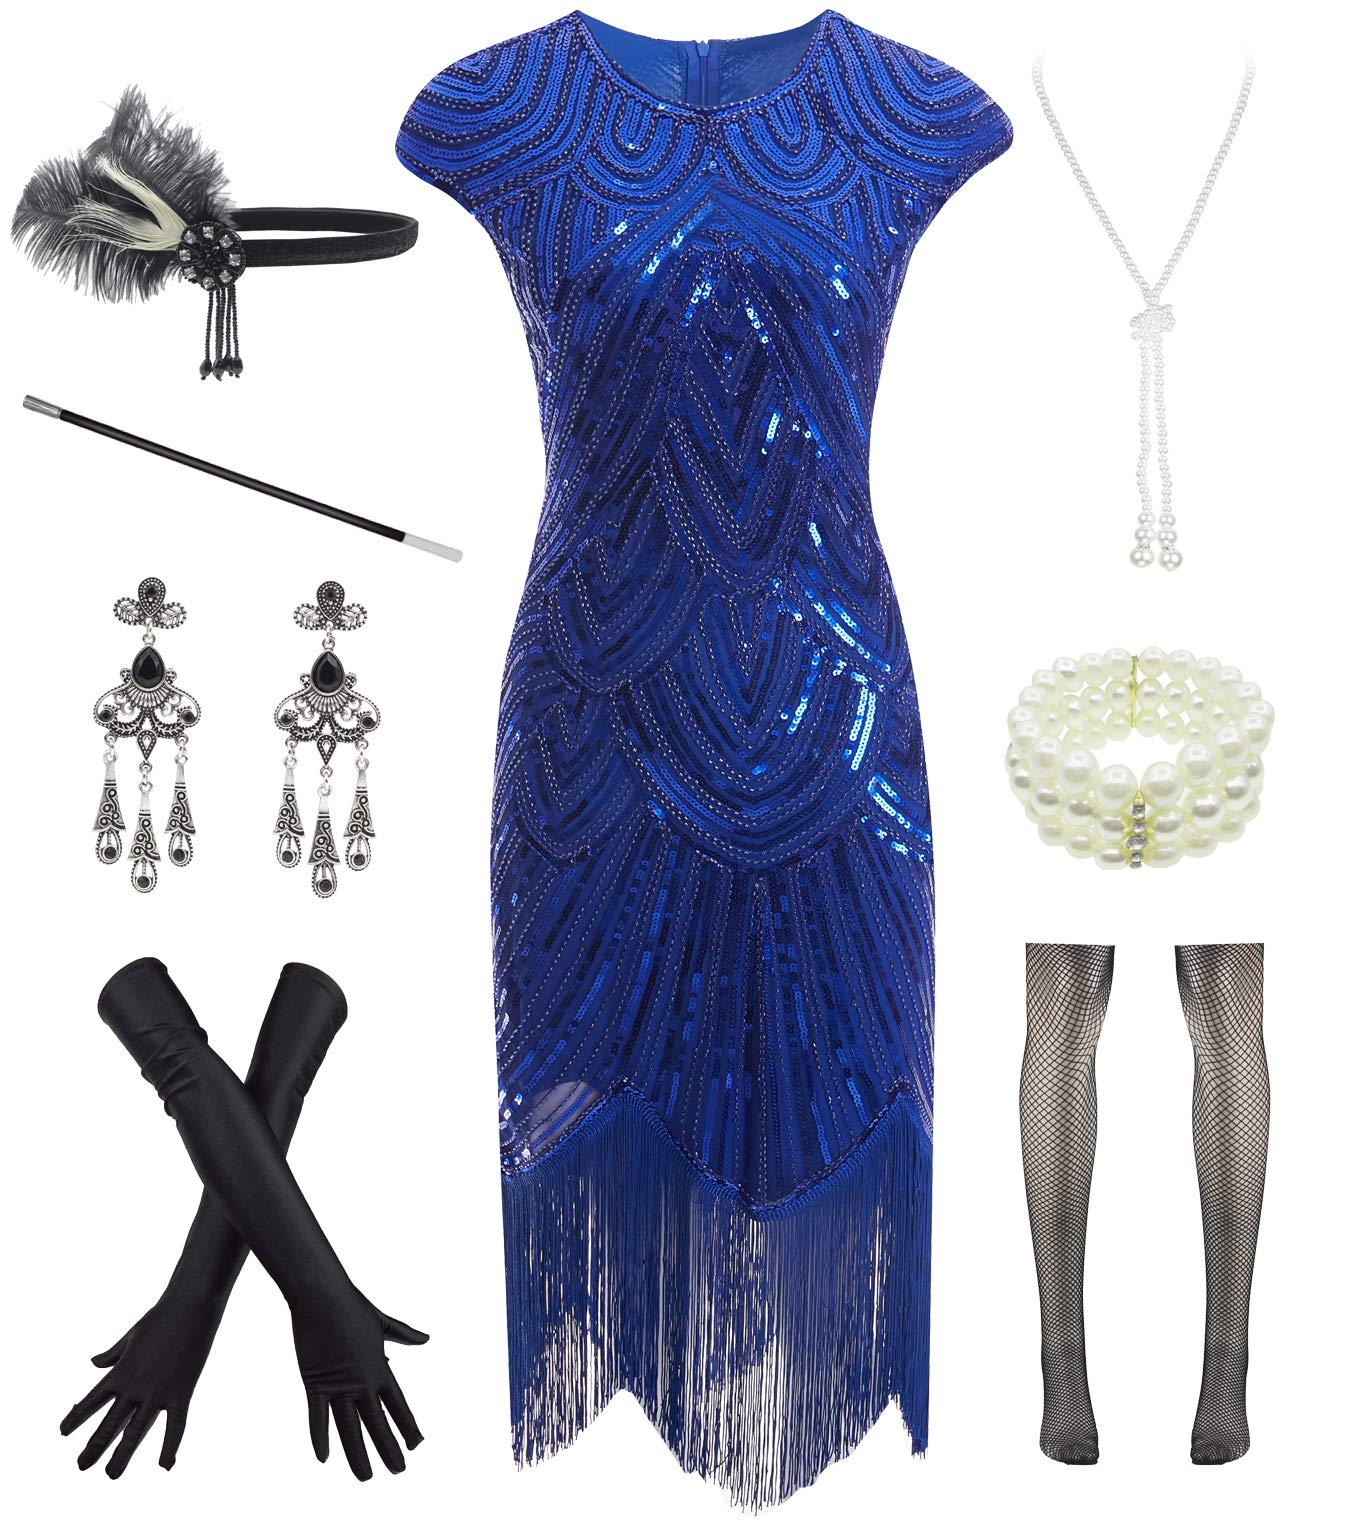 Available at Amazon: Women 1920s Vintage Flapper Fringe Beaded Gatsby Party Dress with 20s Accessories Set